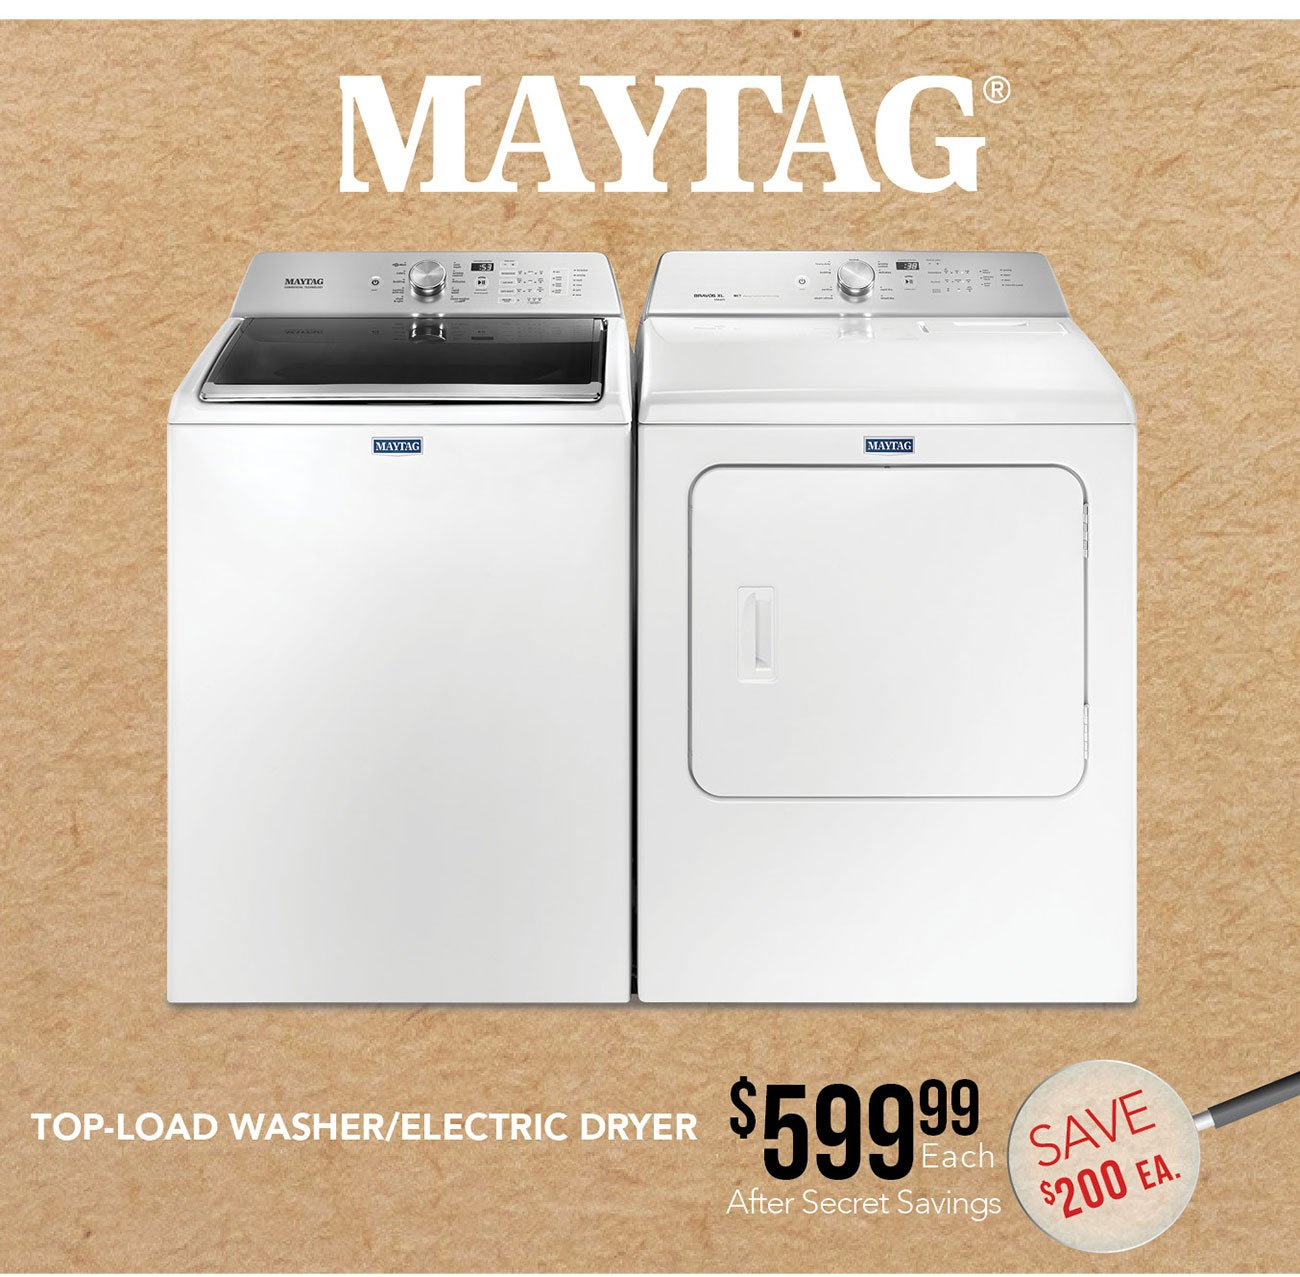 maytag-washer-and-dryer